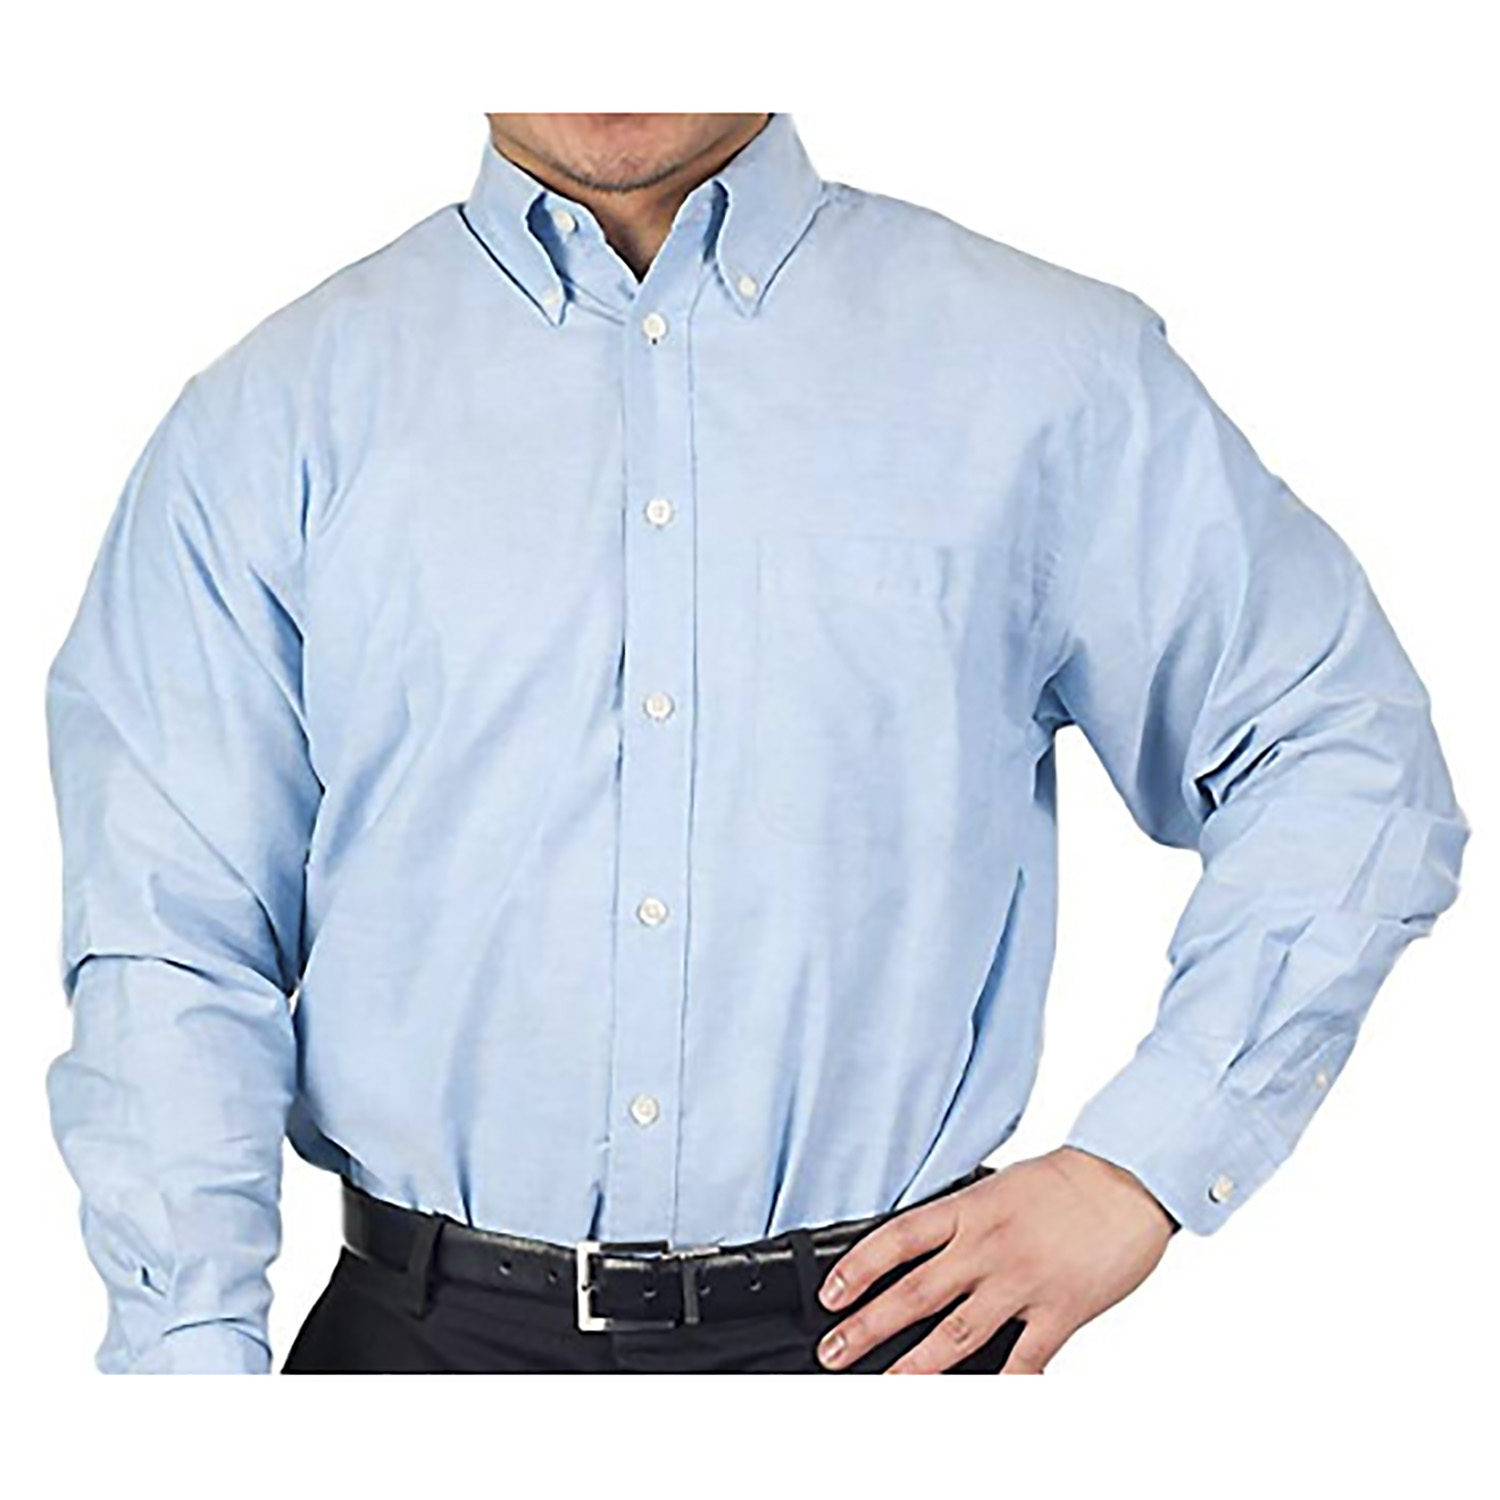 Armark Mens Long Sleeve Oxford shirt